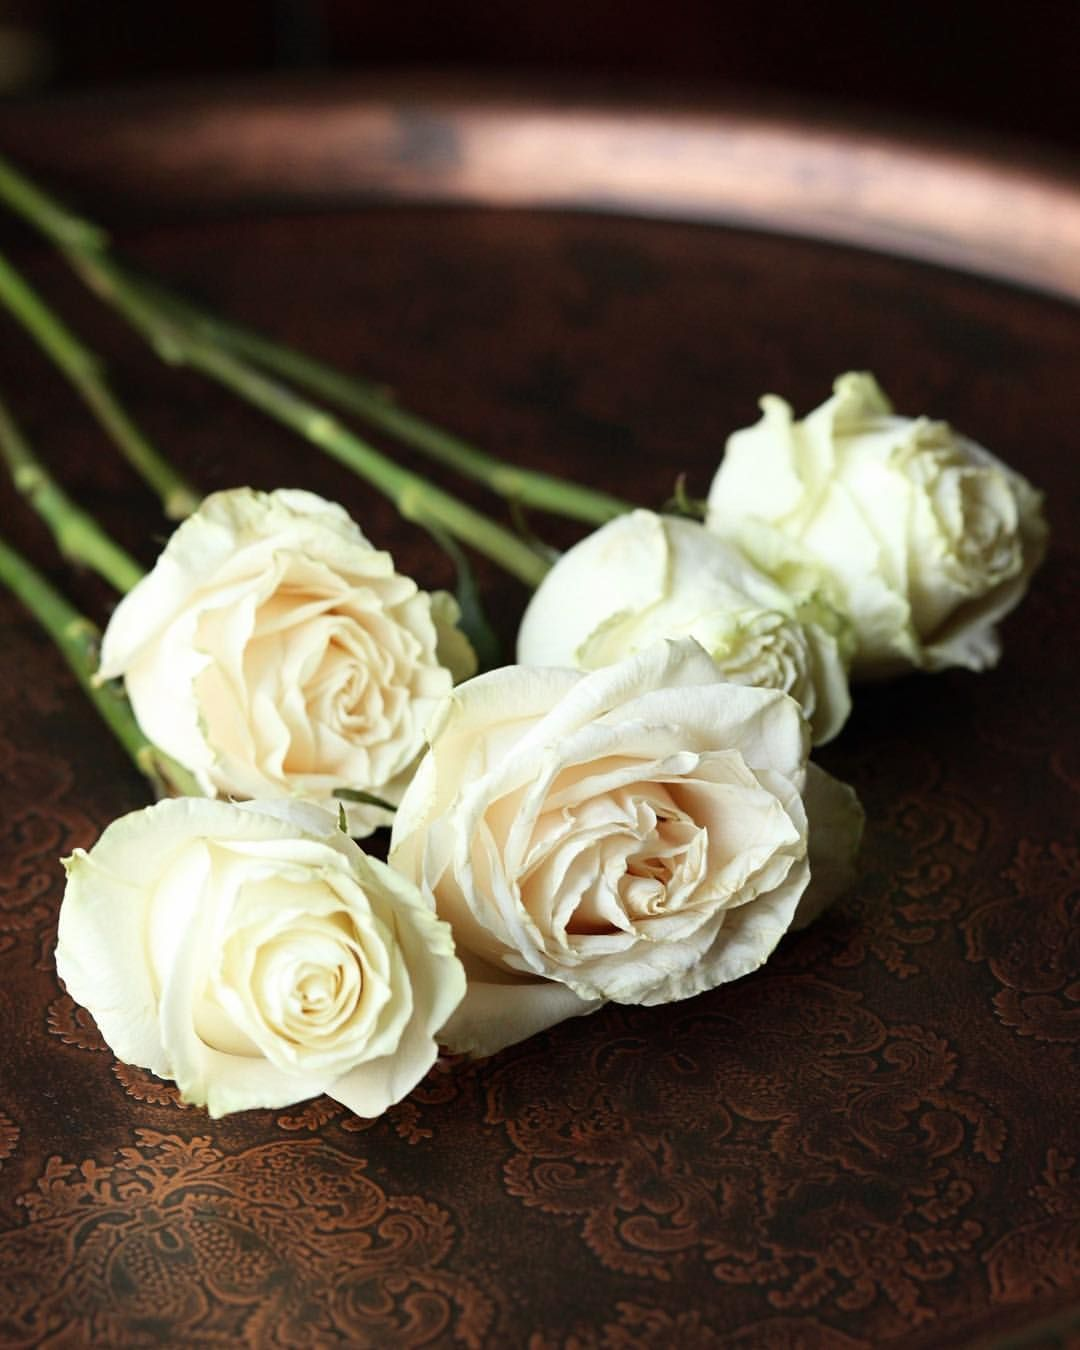 Good Morning Lovers White Roses Make Me Smile I Could Photograph